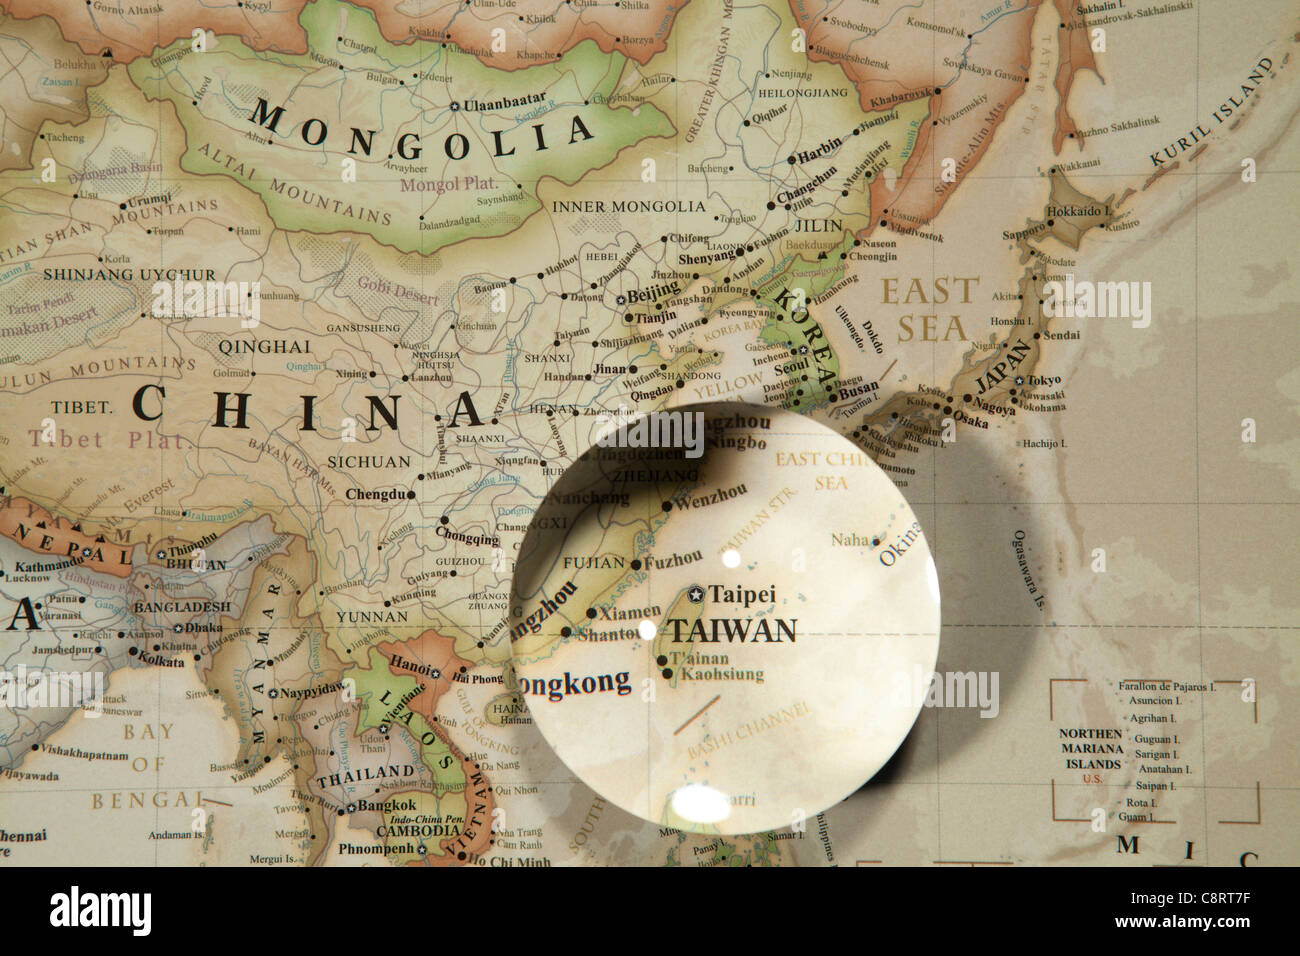 Globe world map crystal ball stock photos globe world map crystal close up of asian continent world map with crystal ball stock image gumiabroncs Image collections